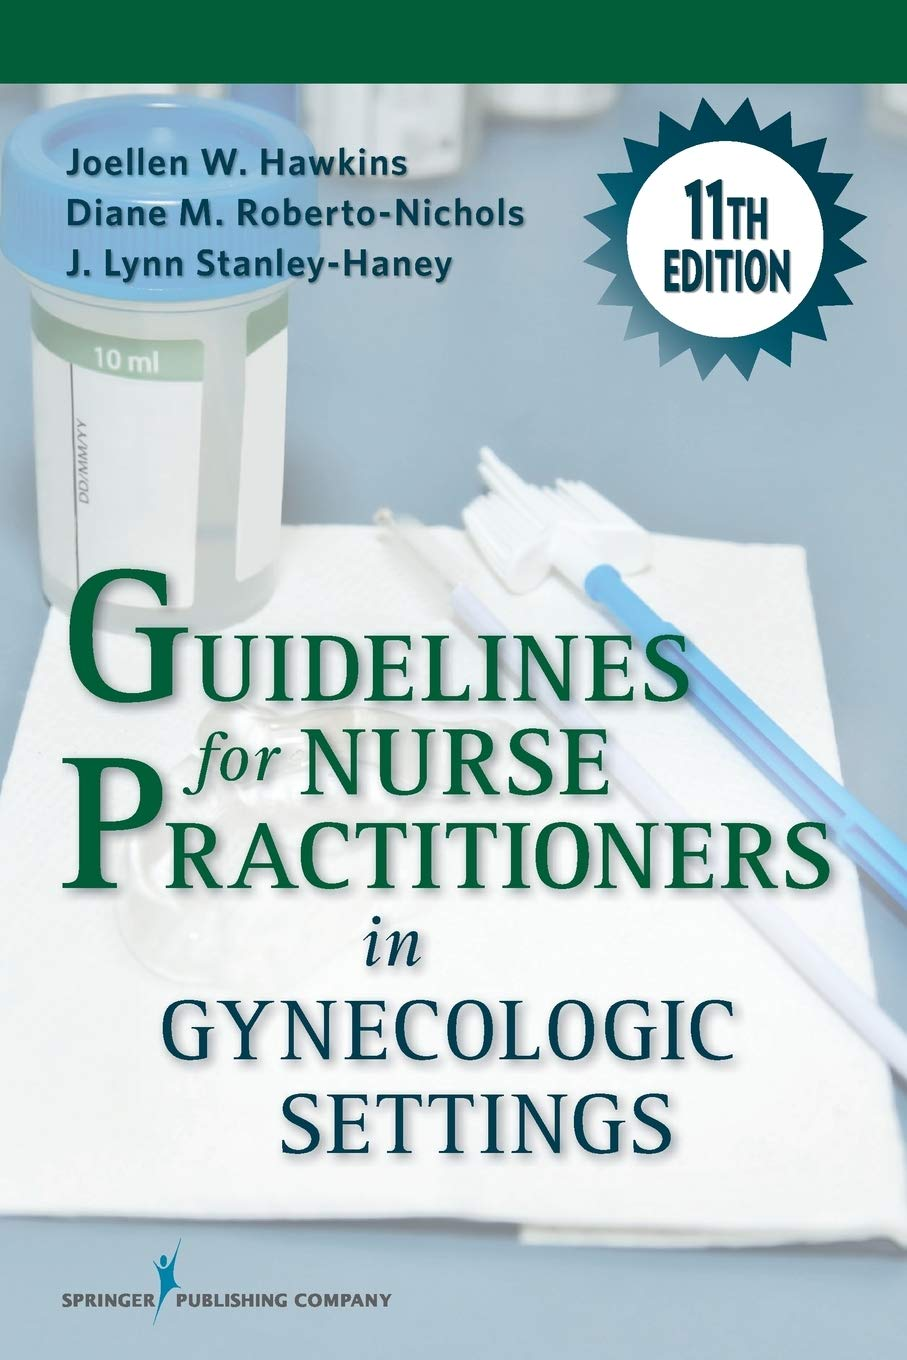 Image OfGuidelines For Nurse Practitioners In Gynecologic Settings, 11th Edition – A Comprehensive Gynecology Textbook, Updated Ch...